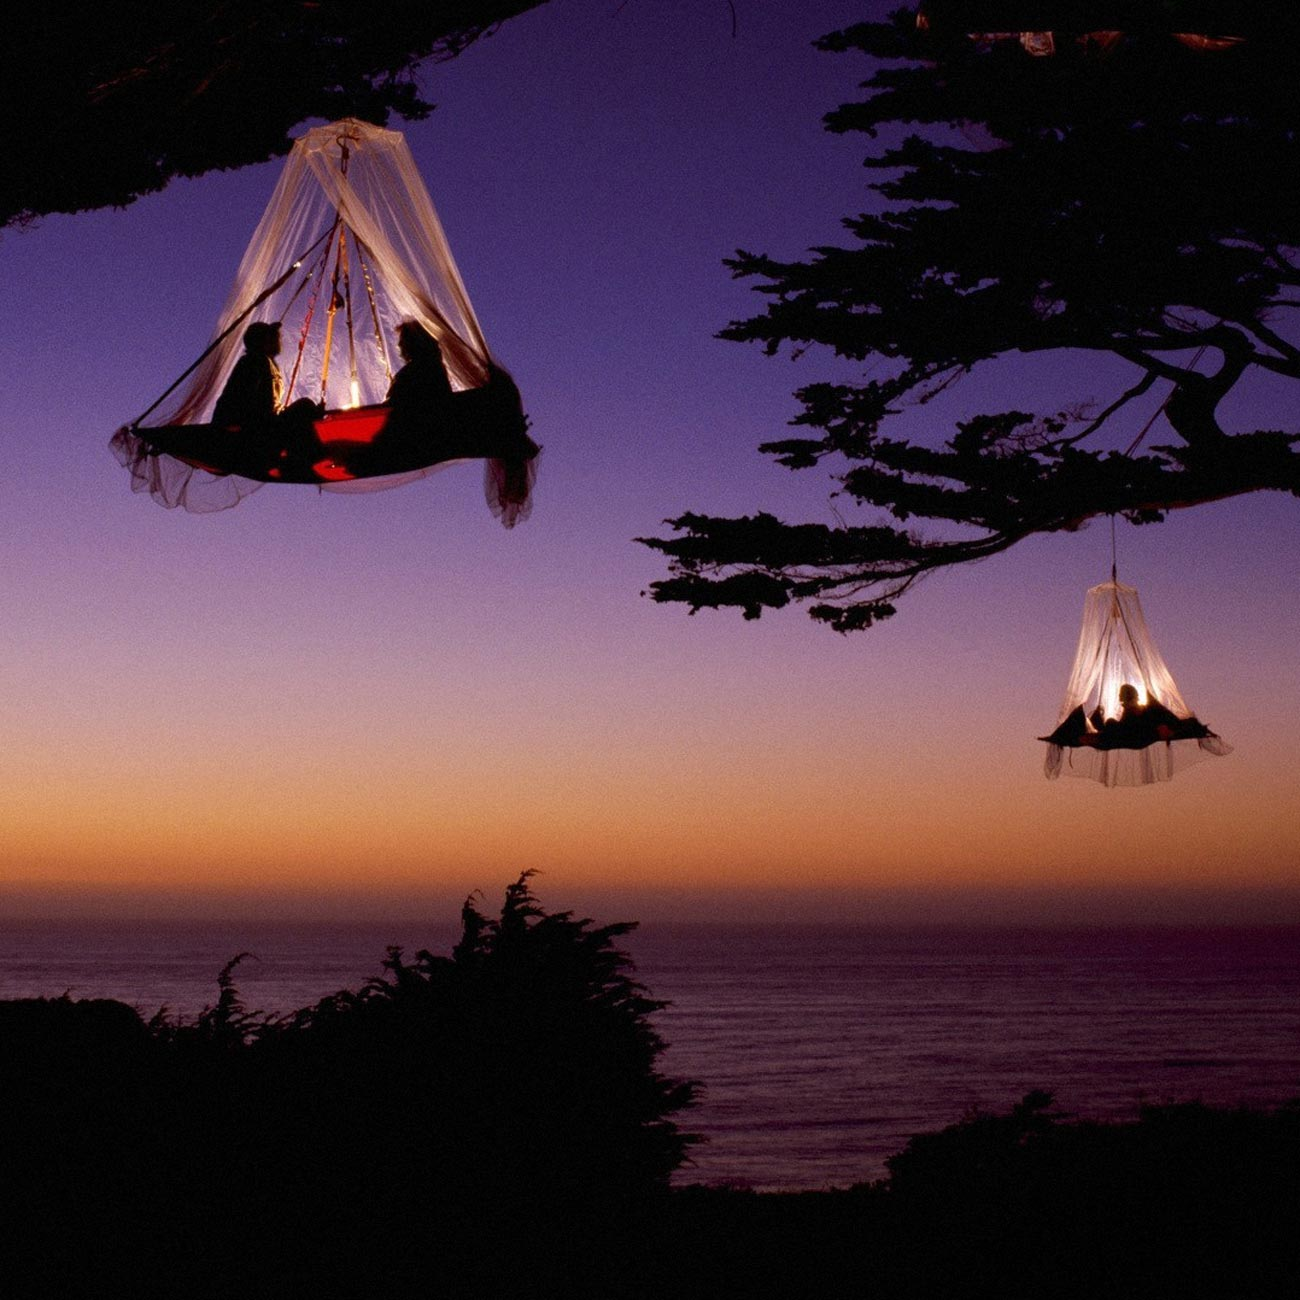 Travellers sleeping in dangling tents